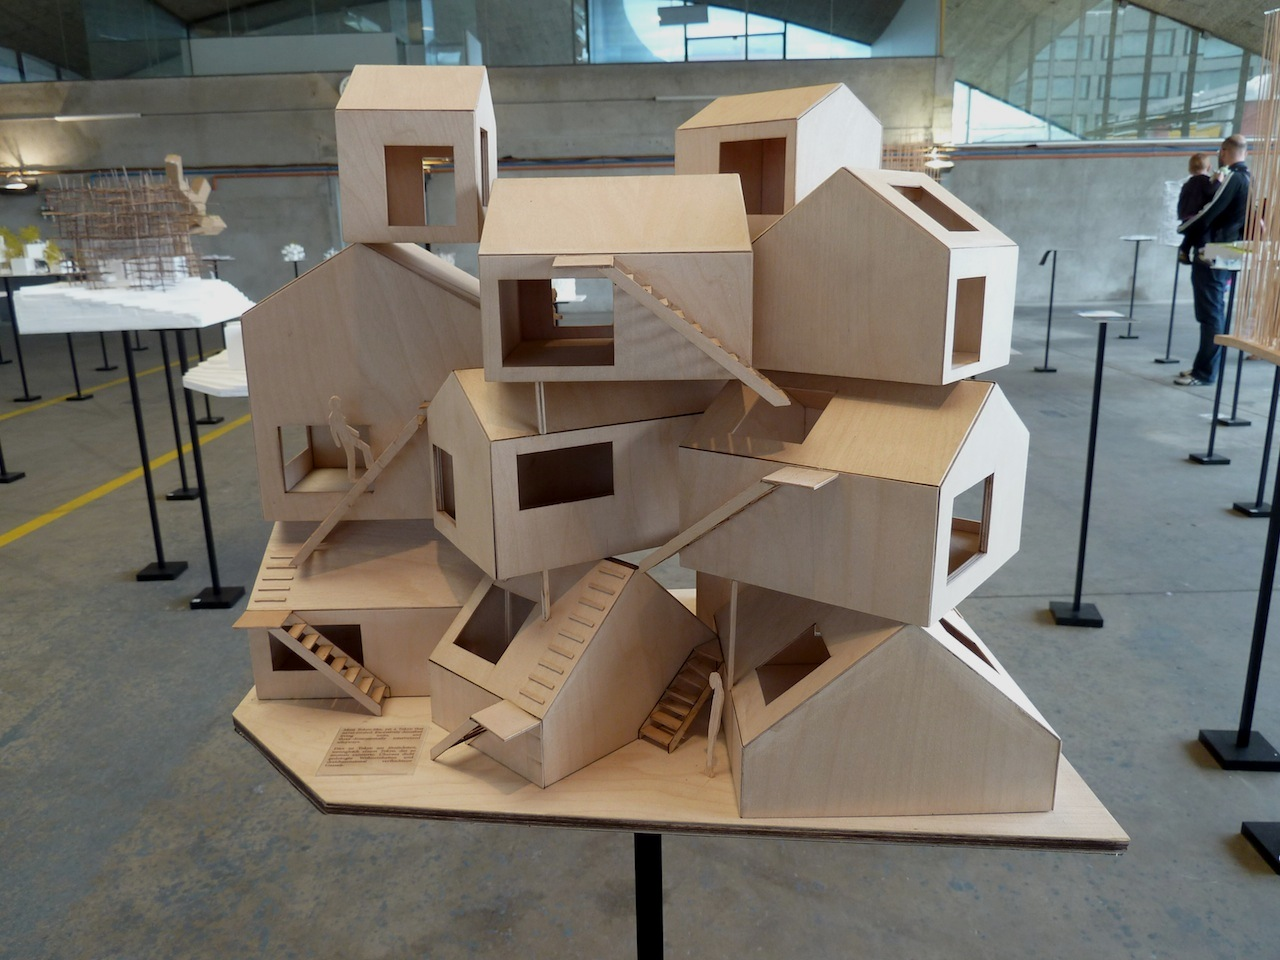 Model Of Tokyo Apartment At The Exhibition Of Sou Fujimoto: Architecture As  Forest.